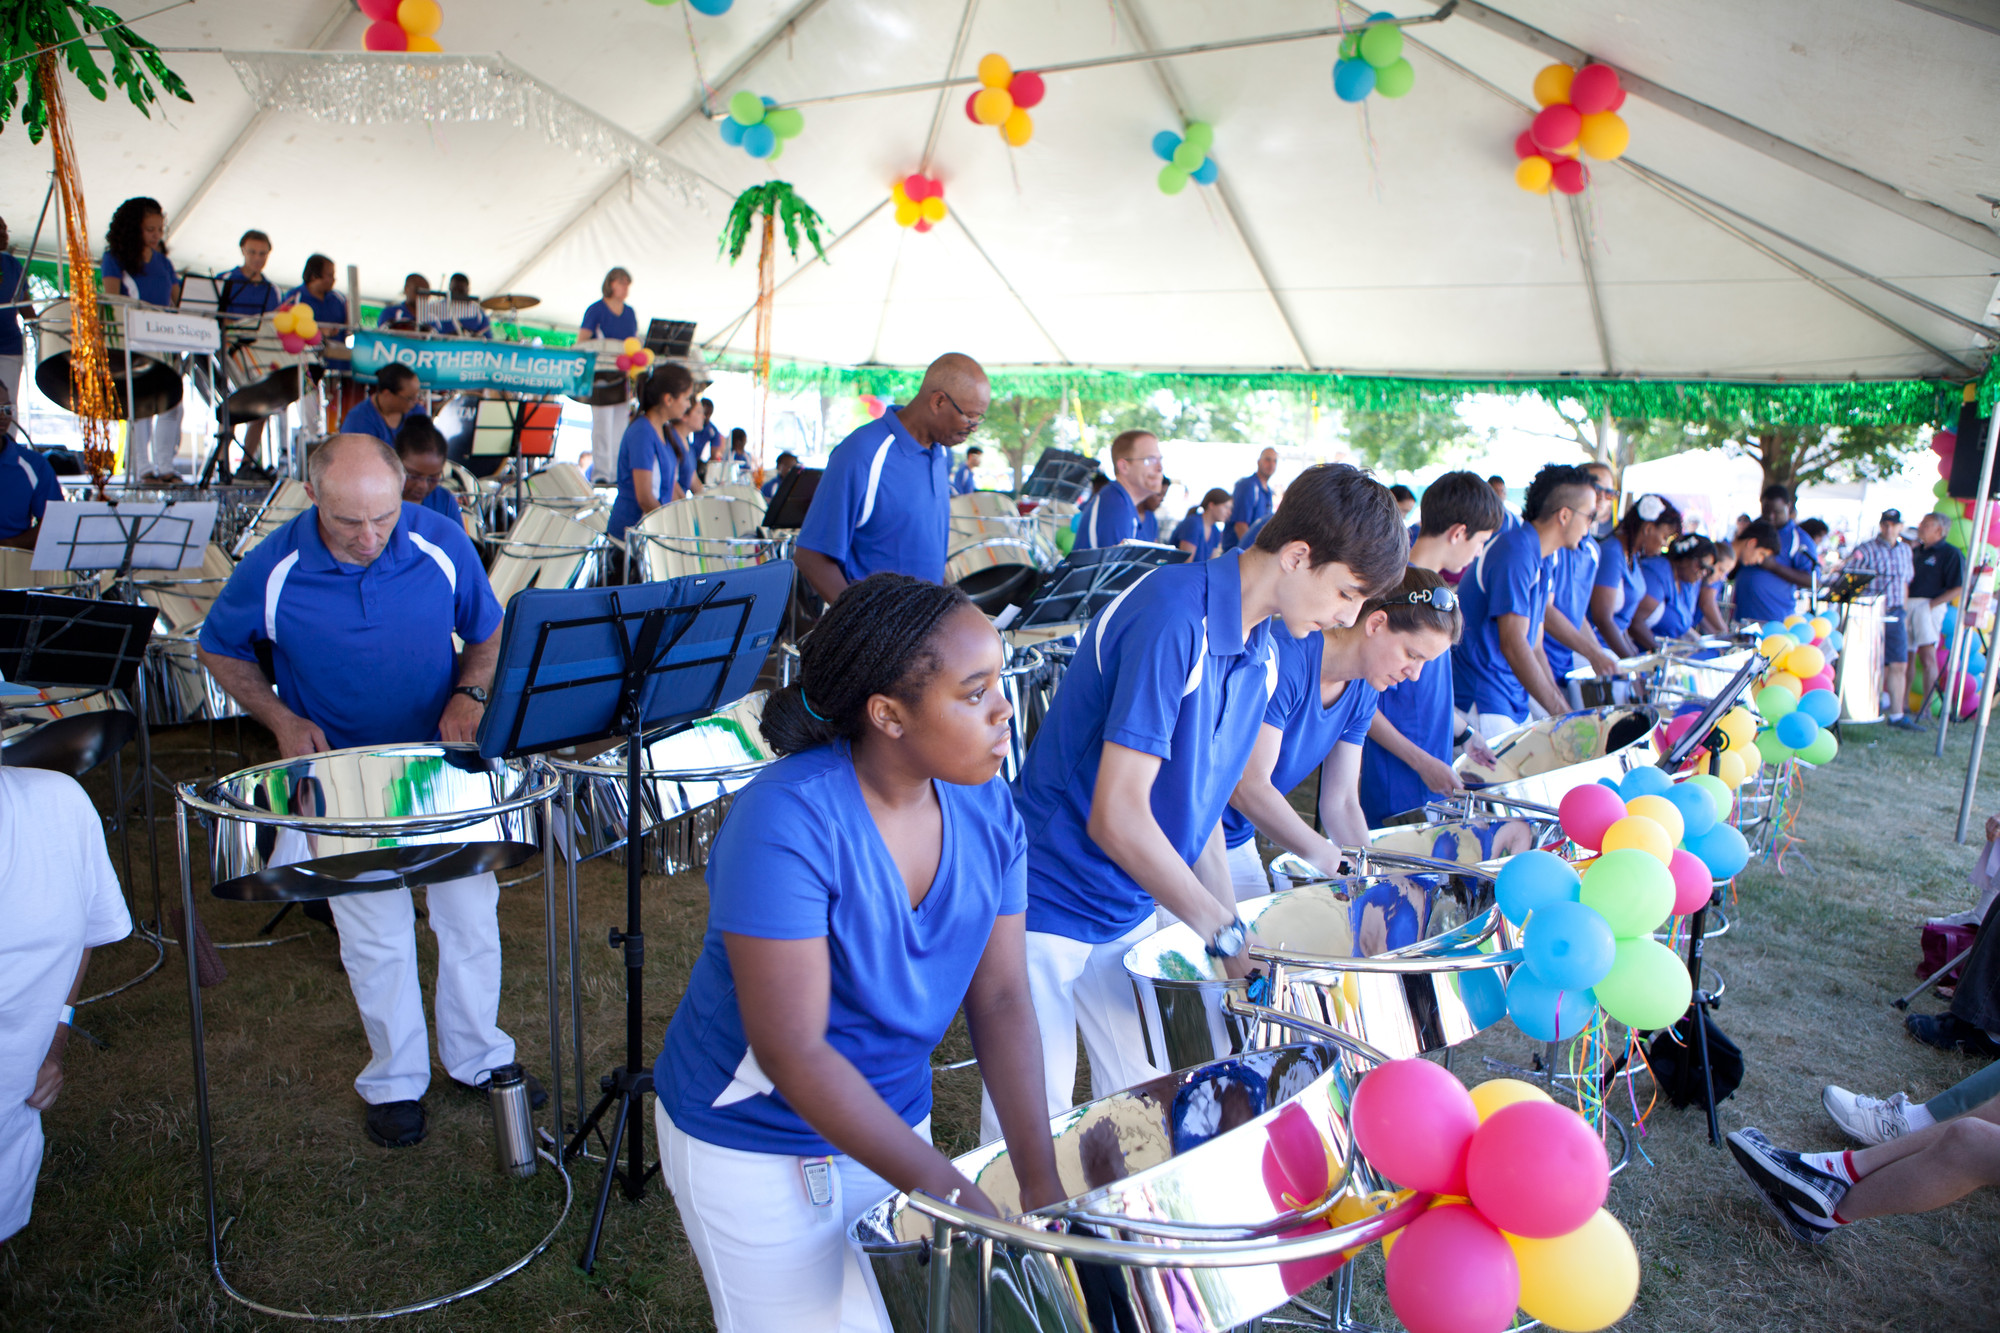 The Northern Light Steel Orchestra, always a big draw at Belleville's Waterfront & Ethnic Festival. (The Great Waterway)